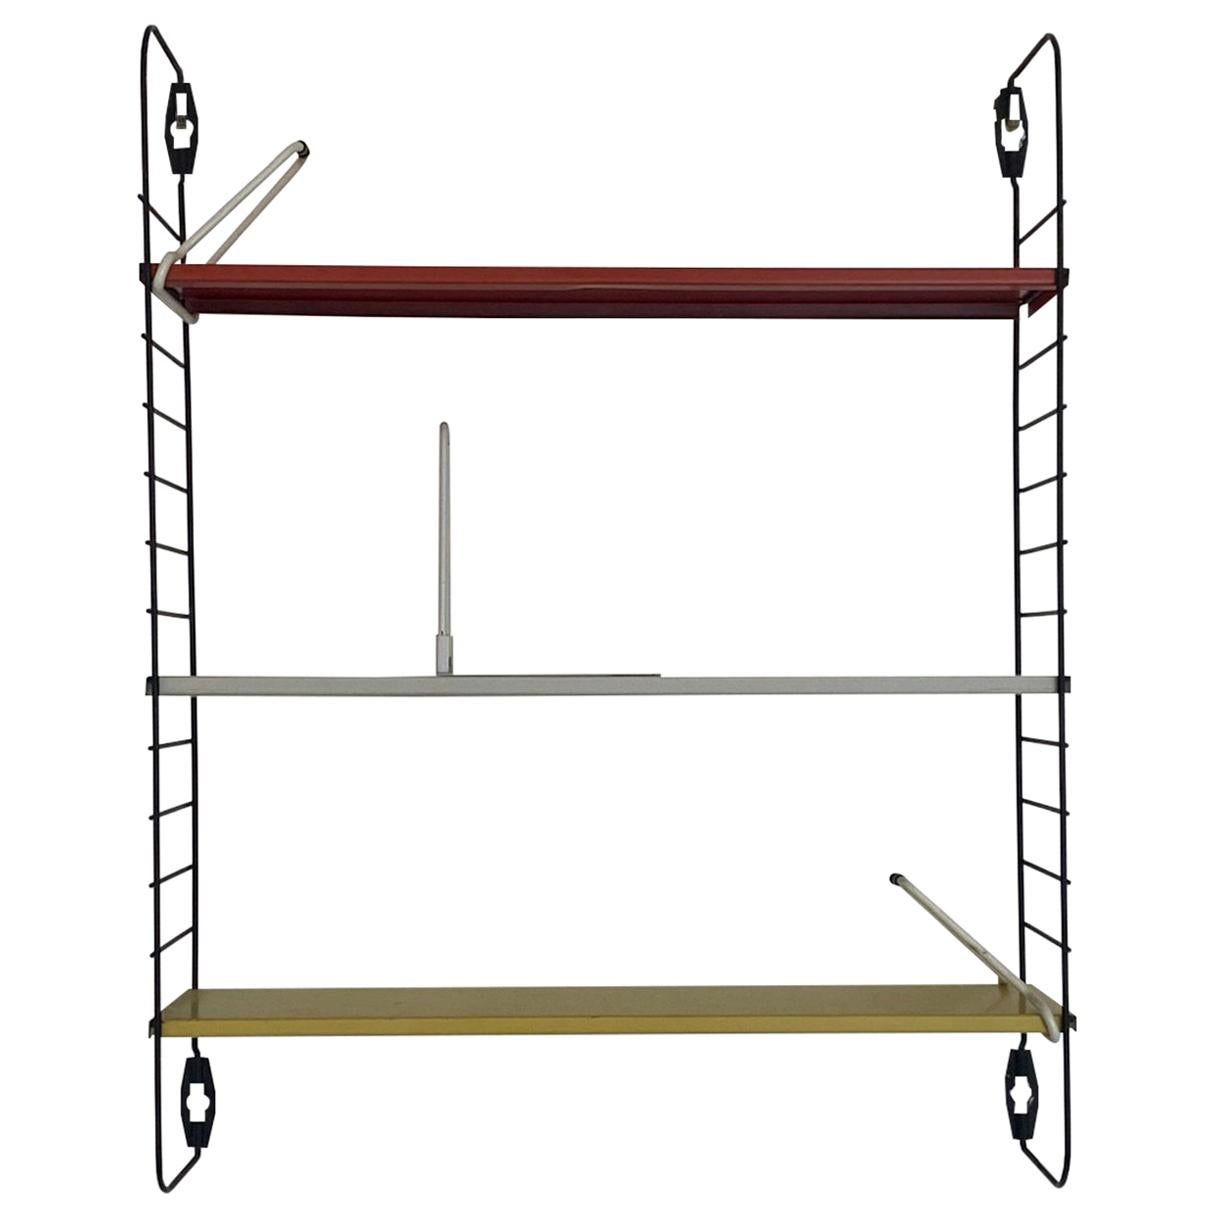 Tomado Midcentury Modular Wall Unit, Shelving System with Rare Bookstands